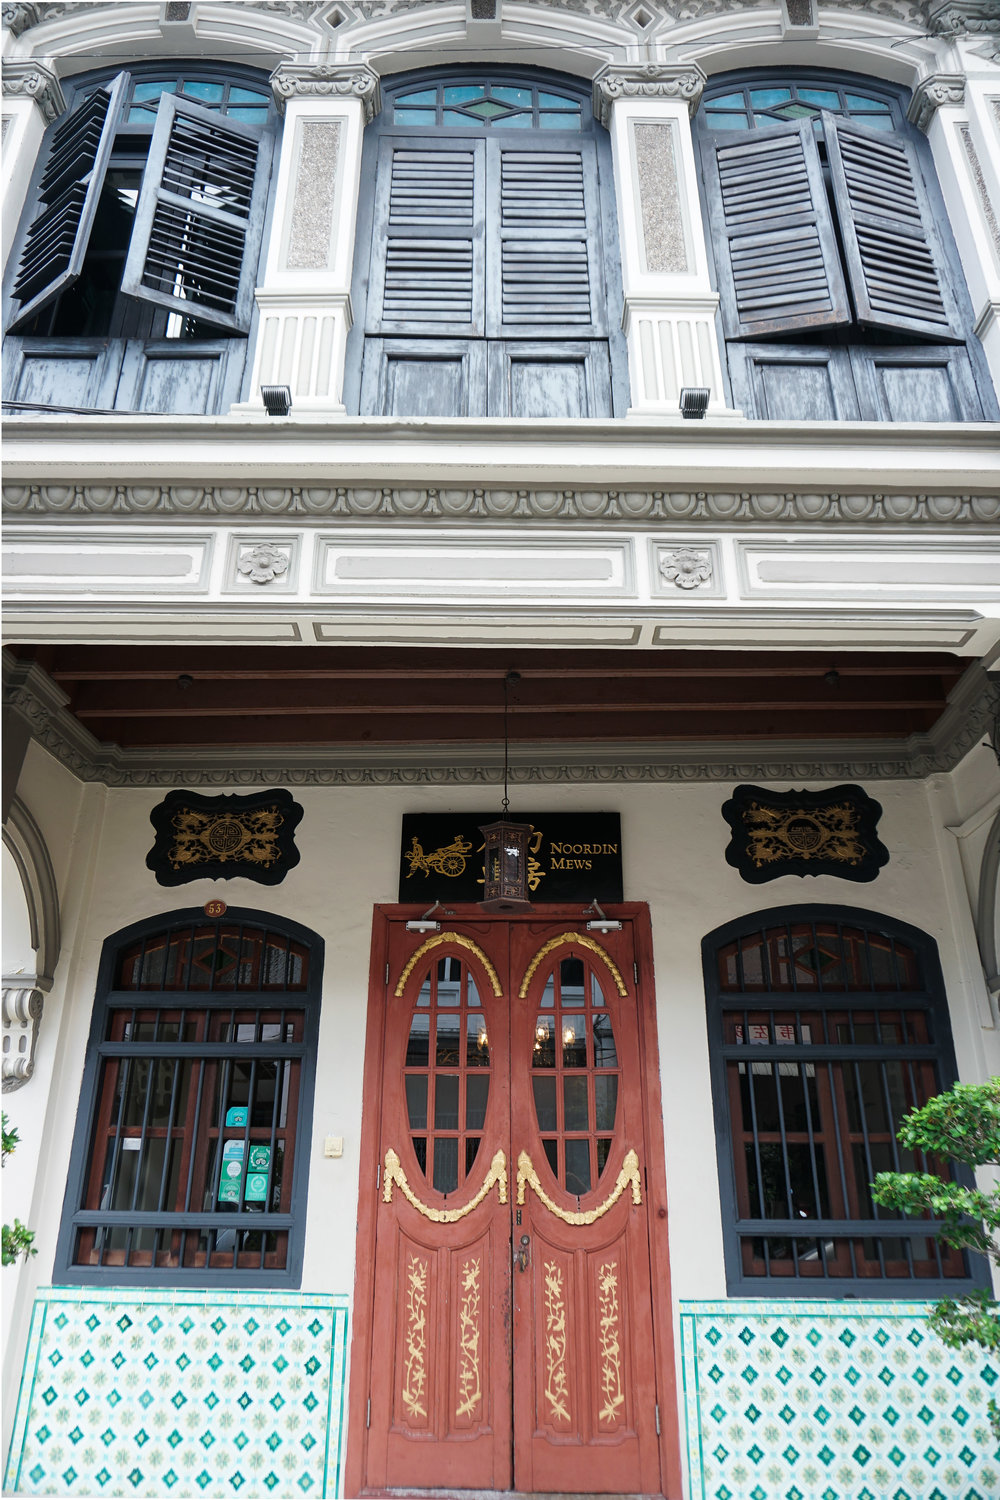 curio.trips.malaysia.penang.red.door.shutter.architecture.portrait.jpg